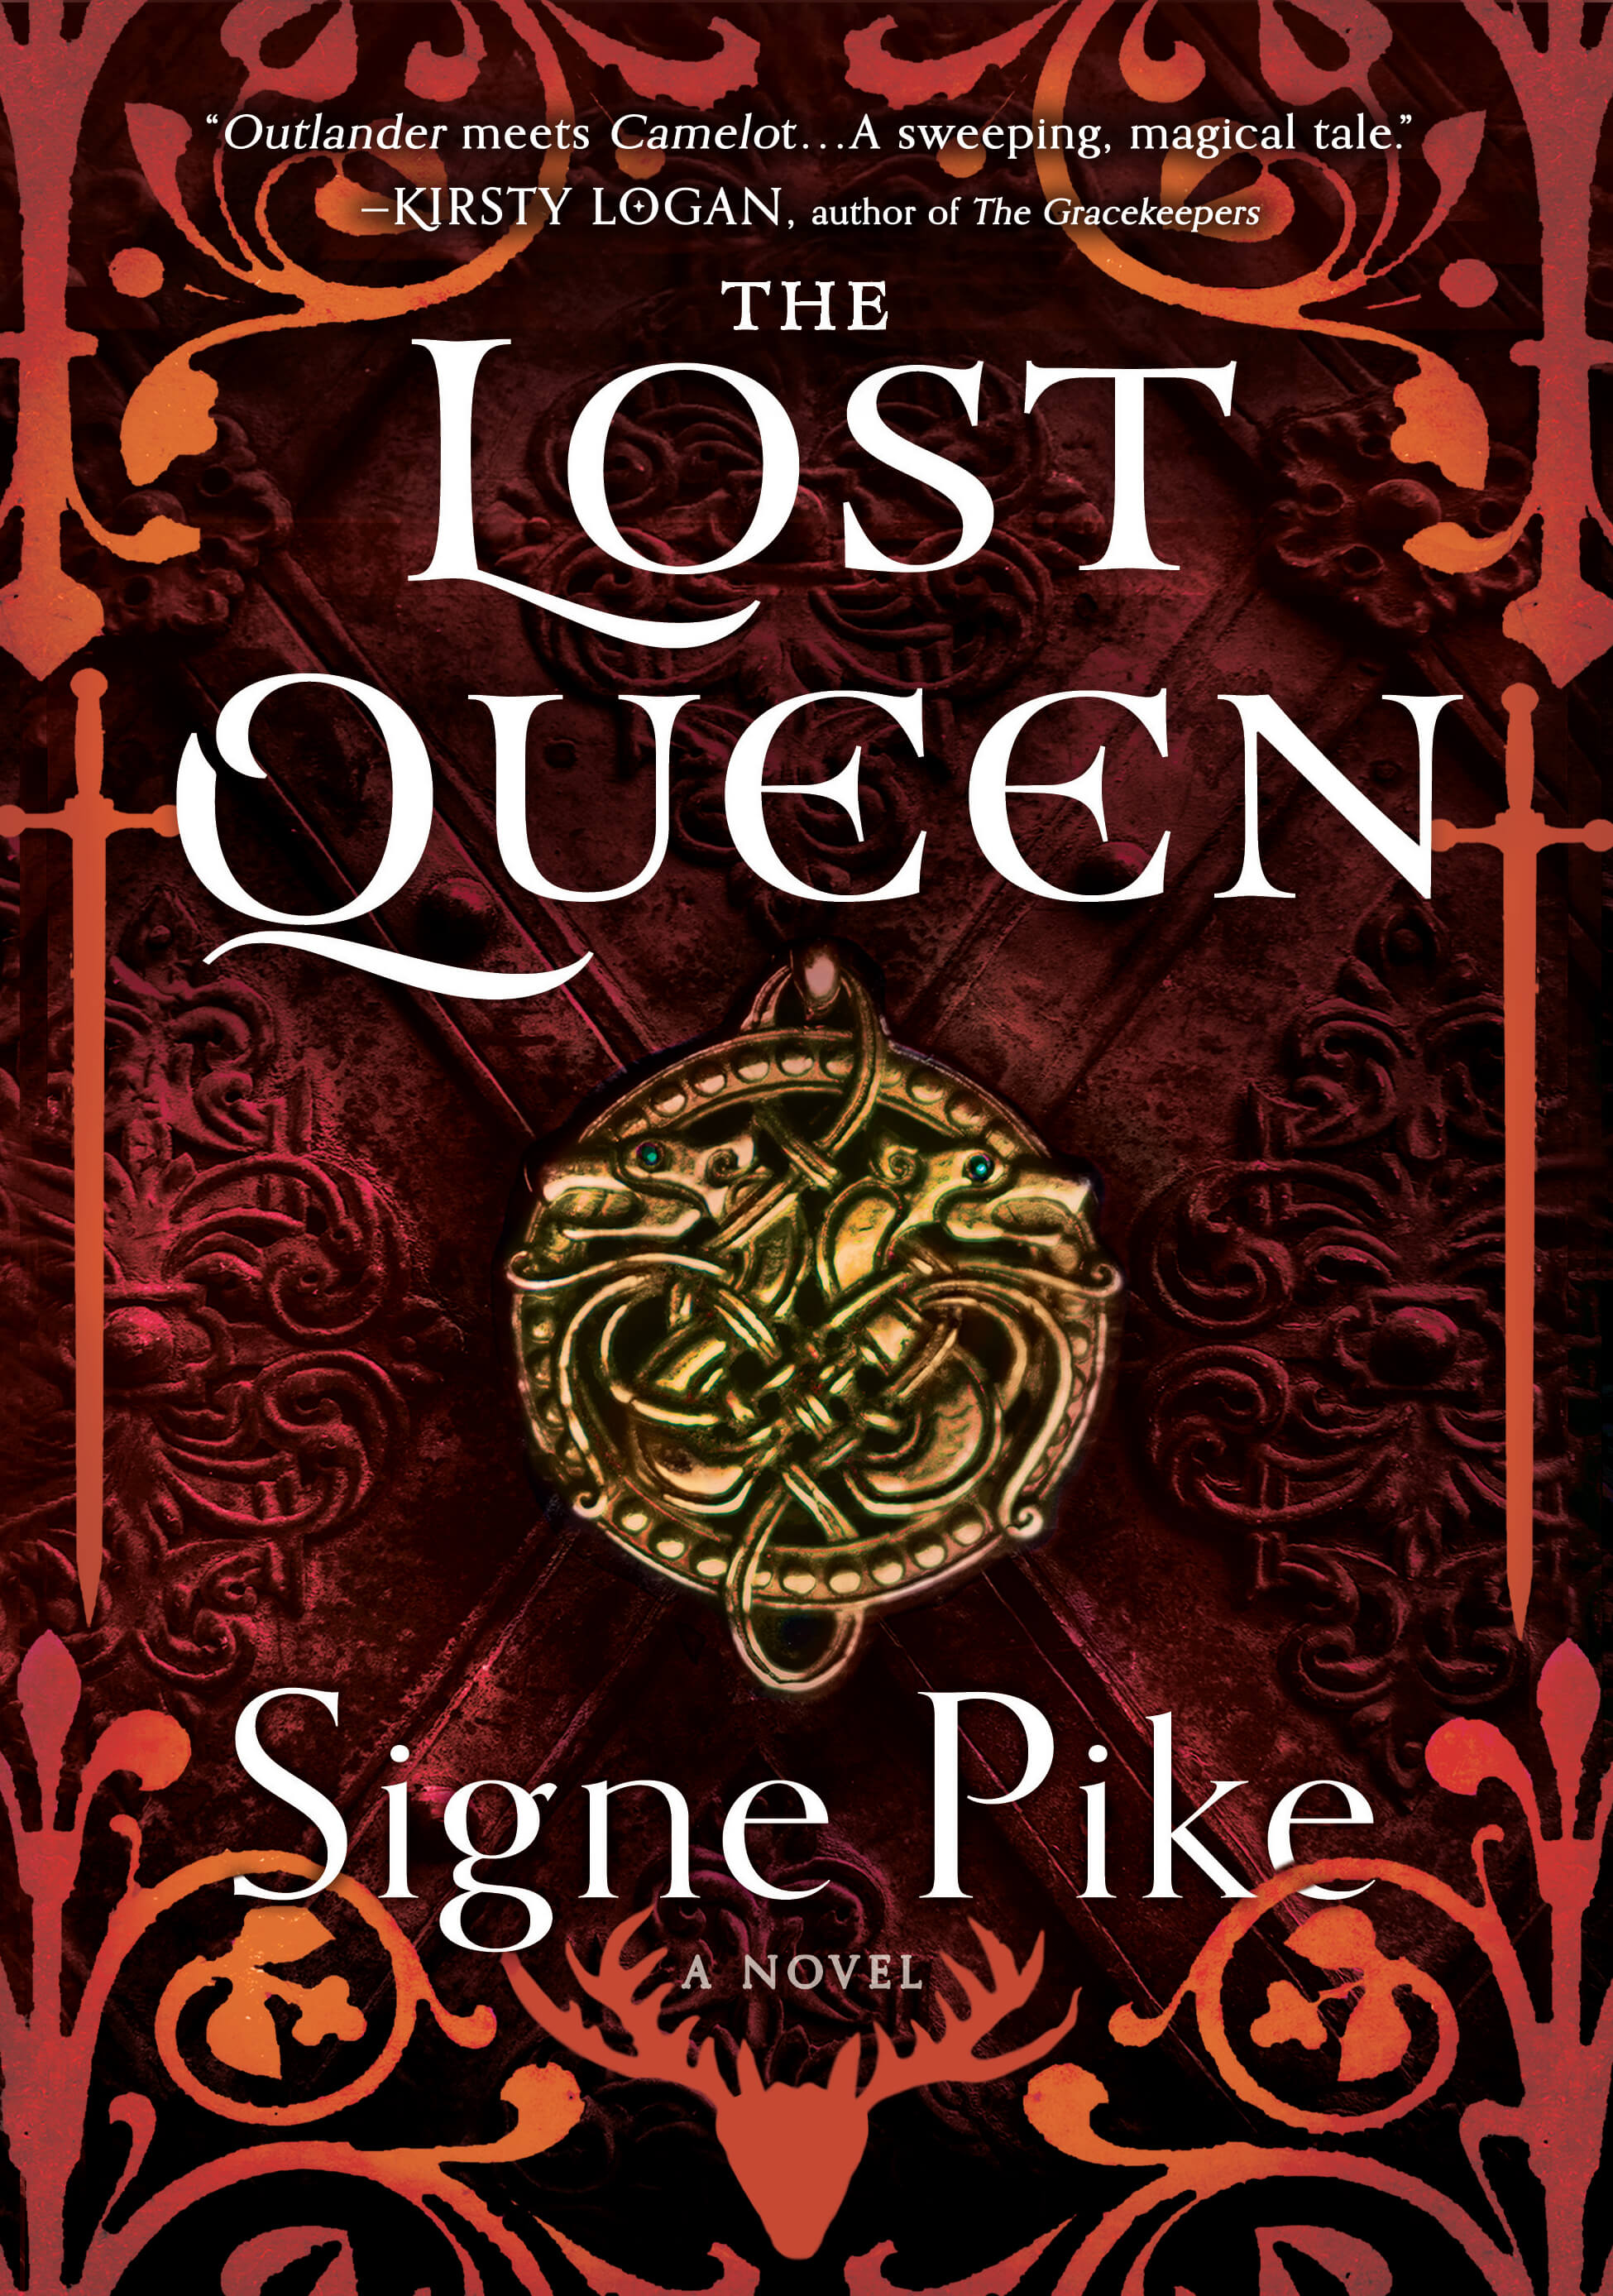 signe pike Lost Queen